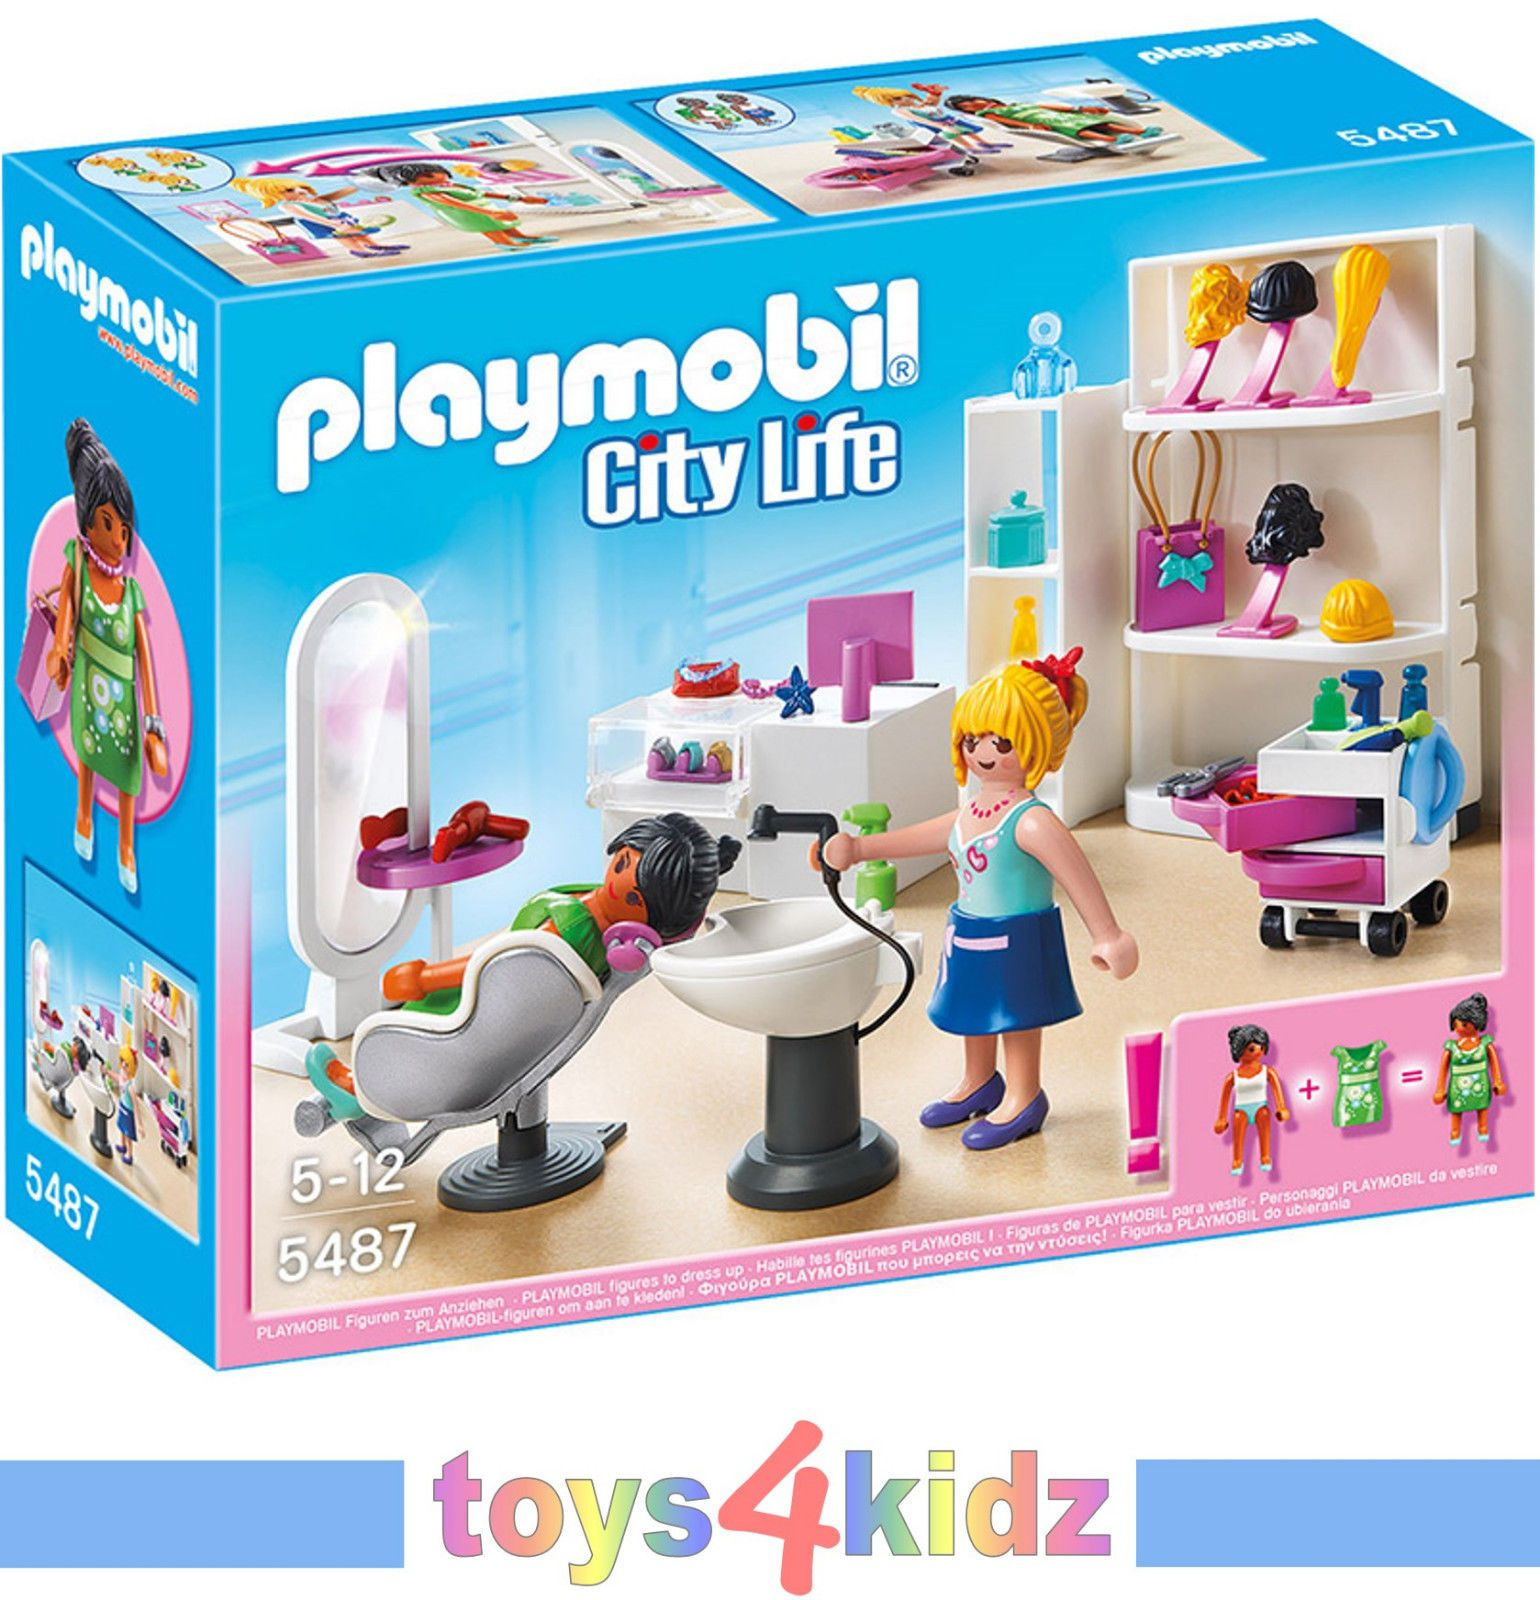 Ebay Angebot Playmobil City Life 5487 Beauty Salon Neu Ovp Ihr Quickberater Playmobil Play Mobile Spielzeug